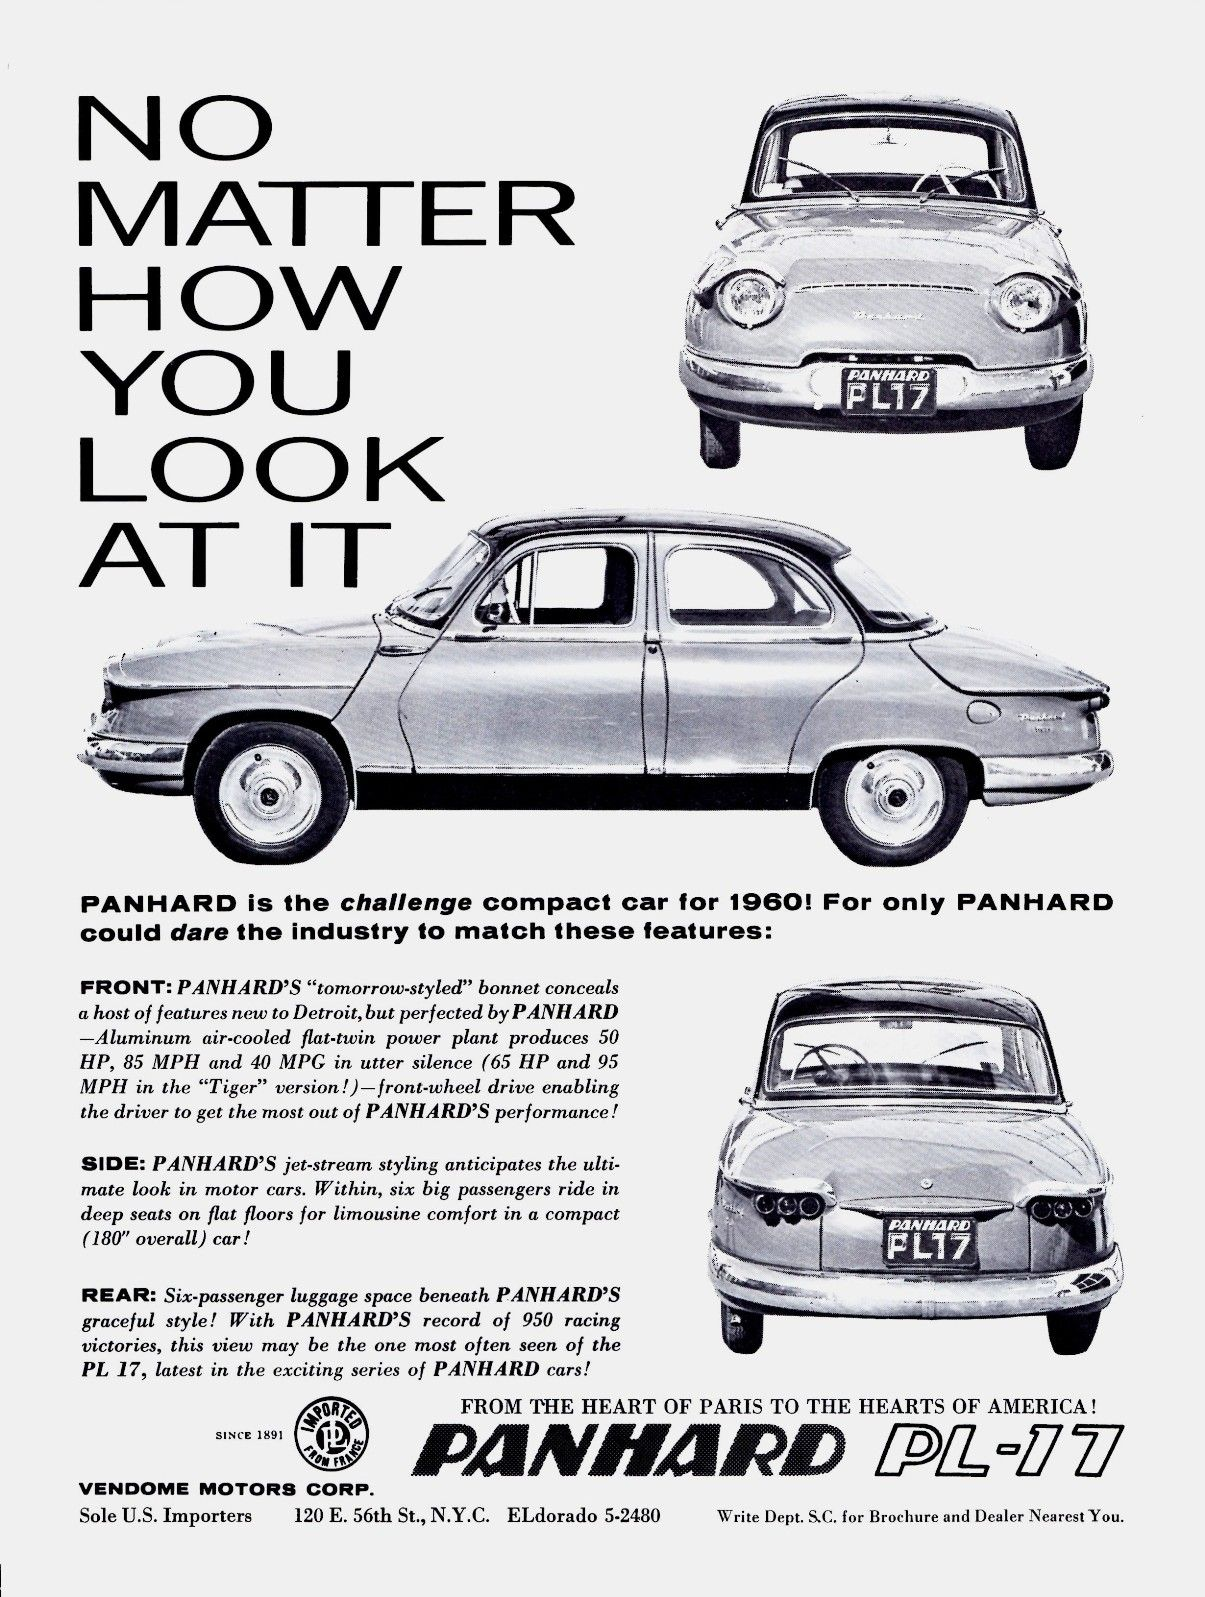 Panhard PL-17 1960, for the U.S.